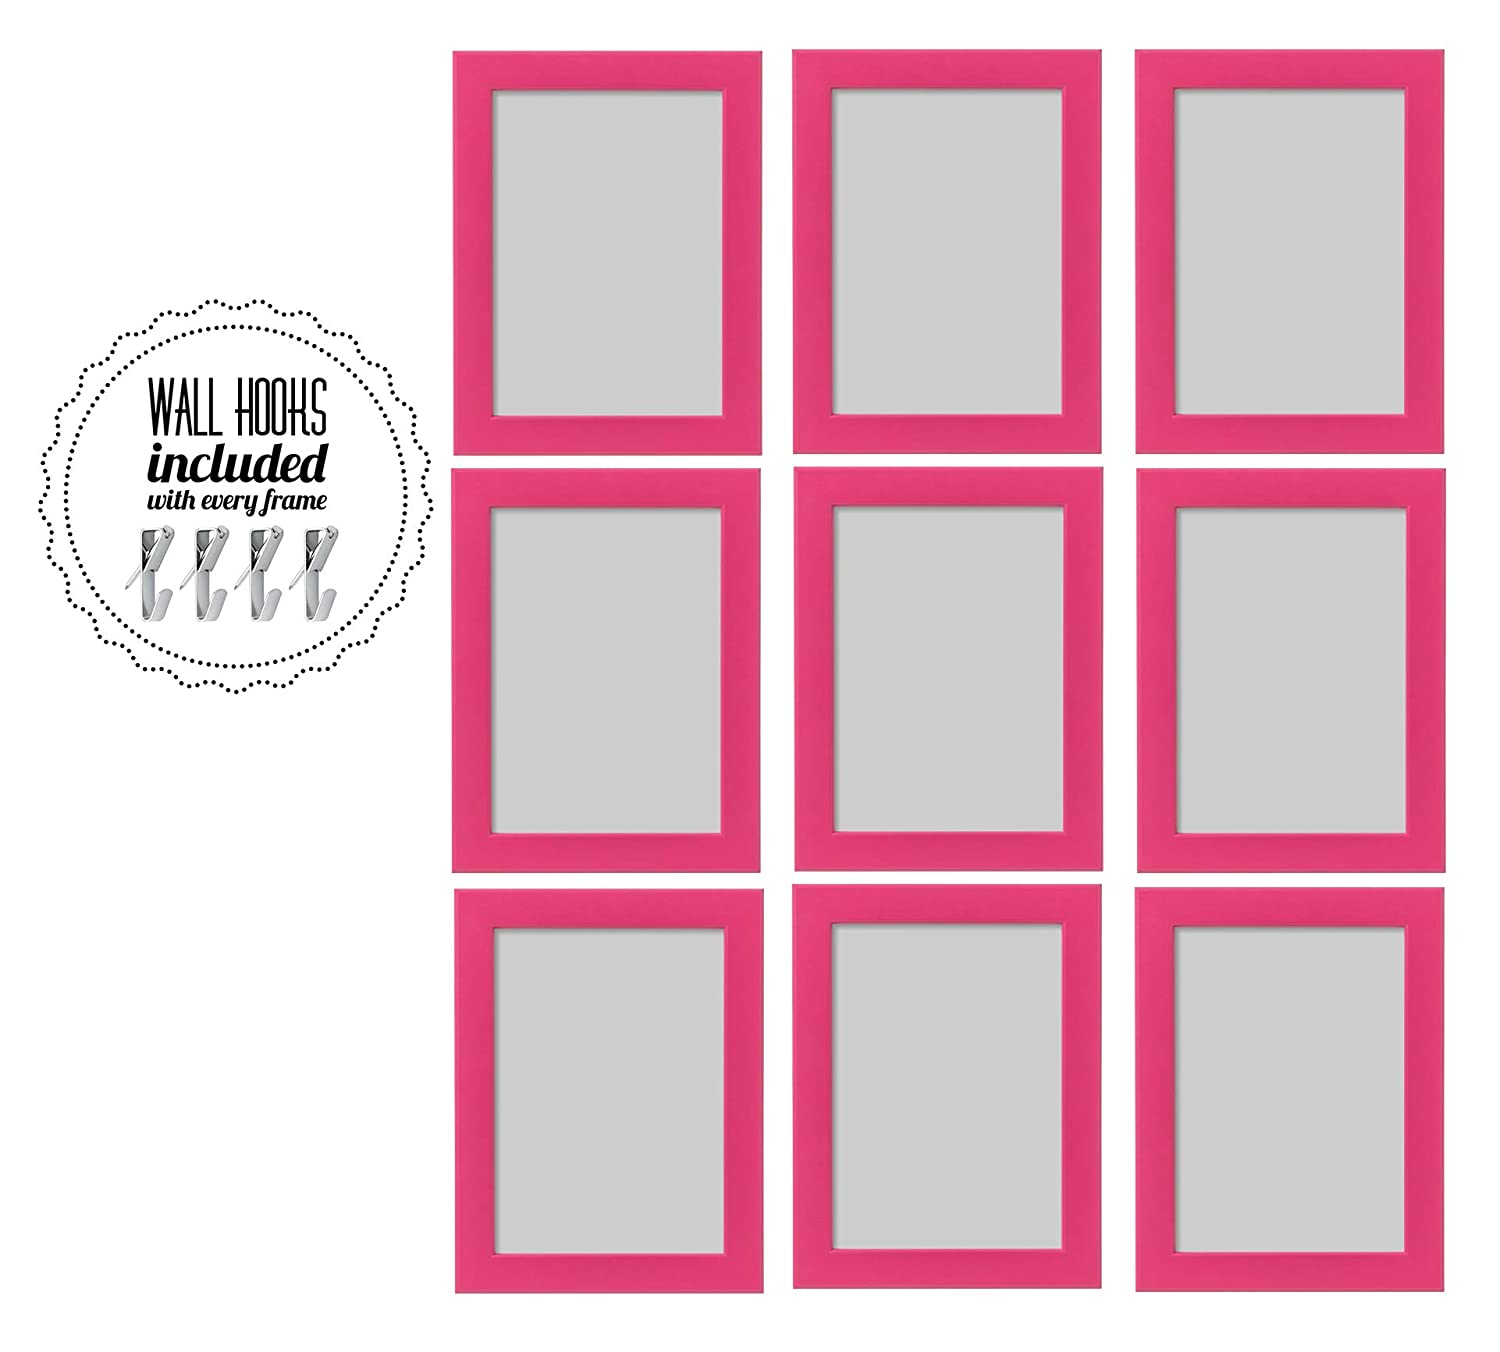 IKEA Fiskbo 5x7 Pink Family Picture Frame Photo Collage with Metal Hardware - Set of 9-5 x 7 Picture Frames - [A+++QBG Wall Hooks] | Set of 9 Photo Frames - for Wall or Desk (Collage of 9 - Pink)